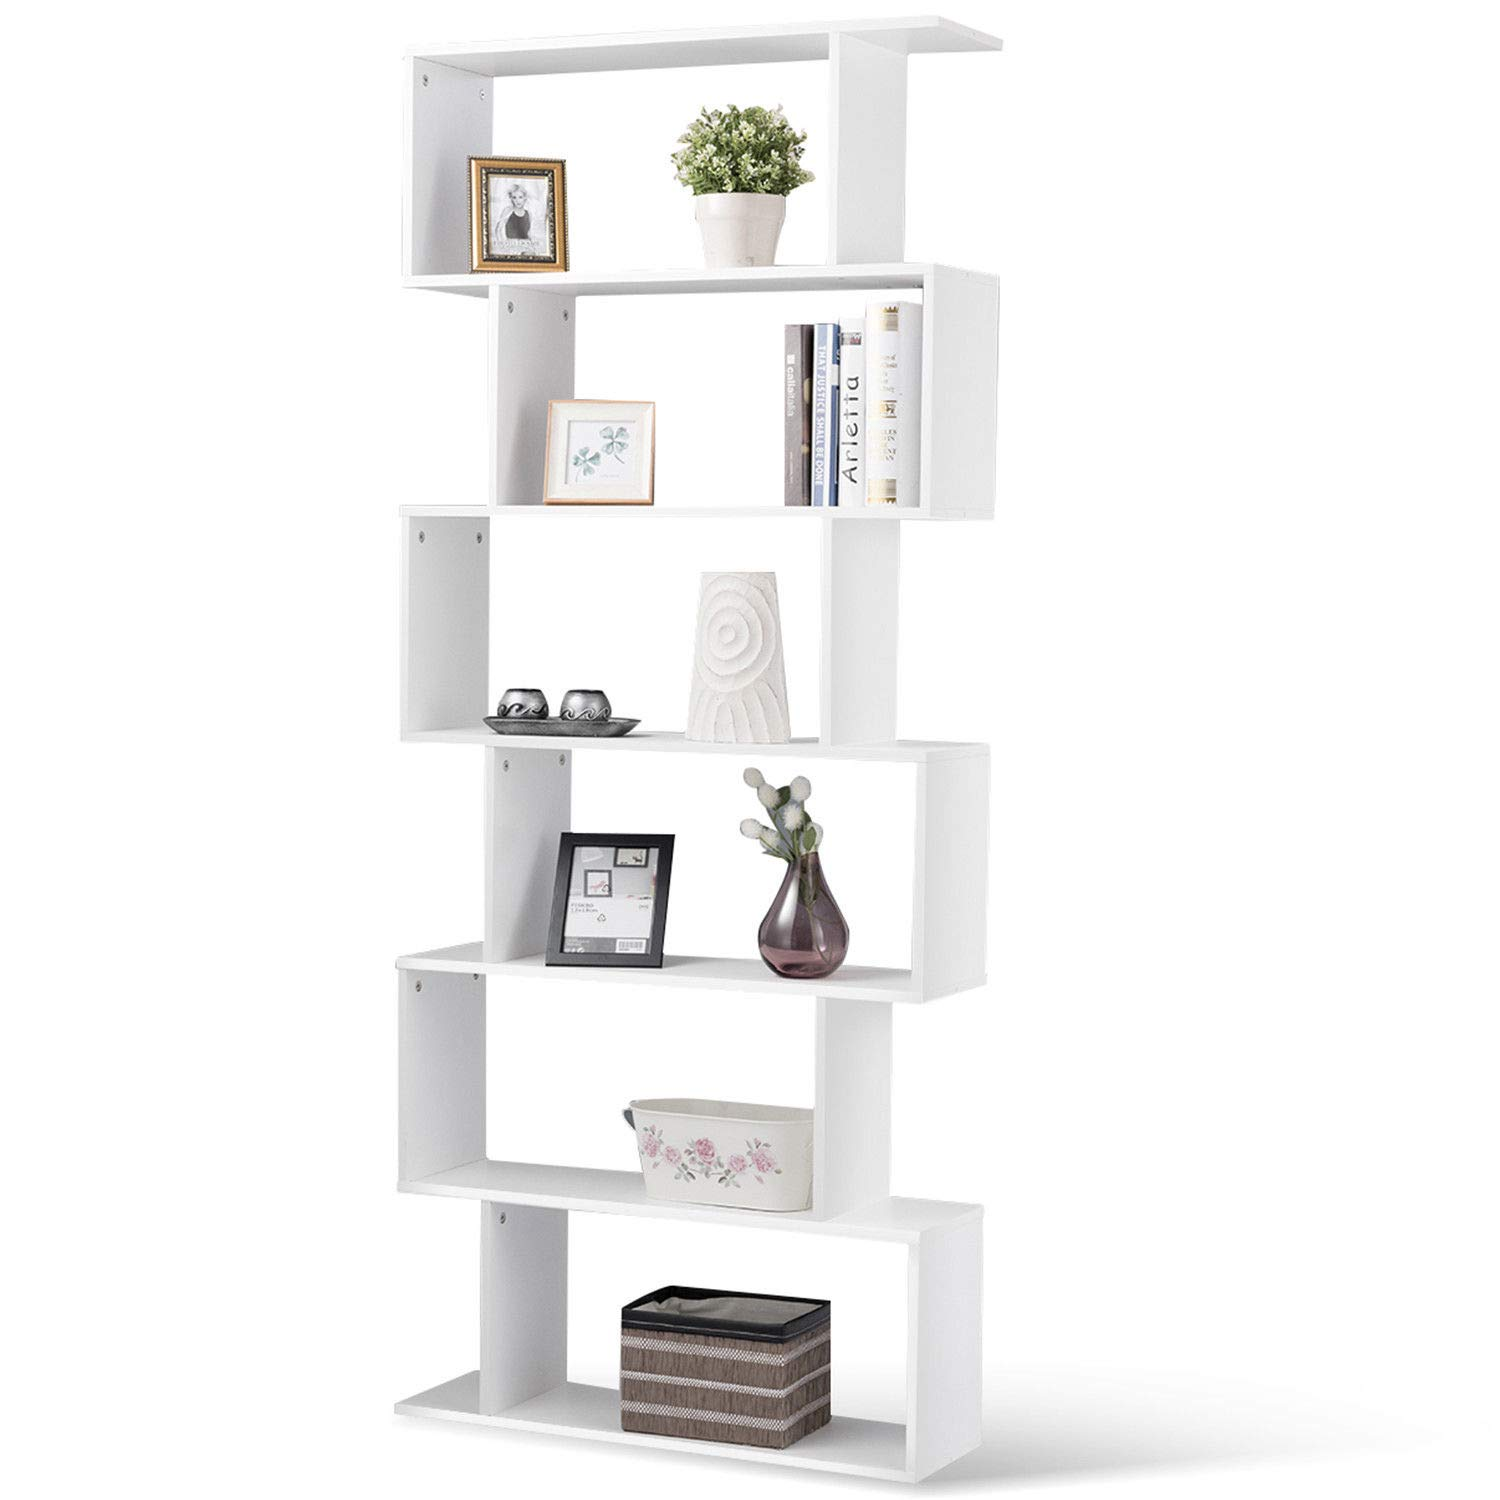 Tangkula 6 Shelf Bookcase S-Shaped Z-Shelf Style Bookcase Multifunctional Wooden Storage Display Stand Shelf Modern & Simple Living Room Free Standing Book Shelf Storage Shelf (White)